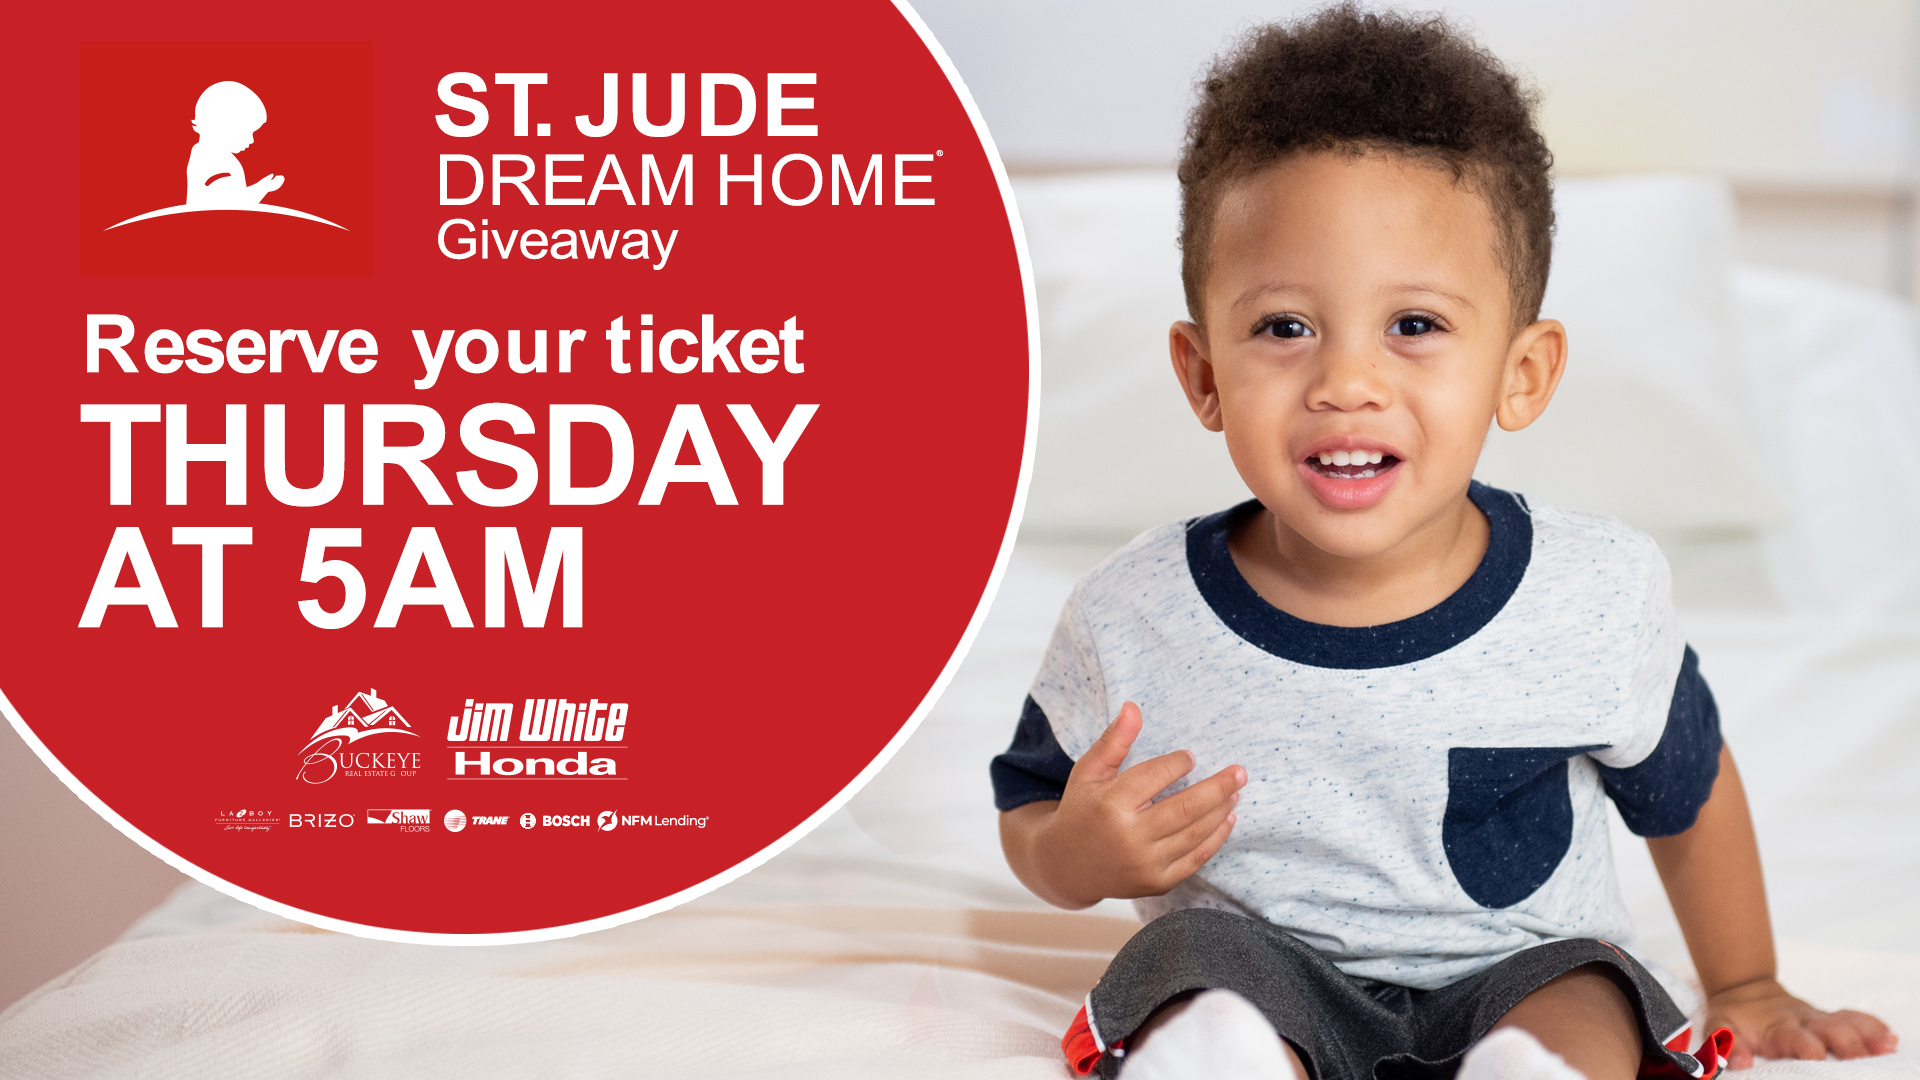 St. Jude Dream Home | Reserve your ticket for a chance to win starting May 13!